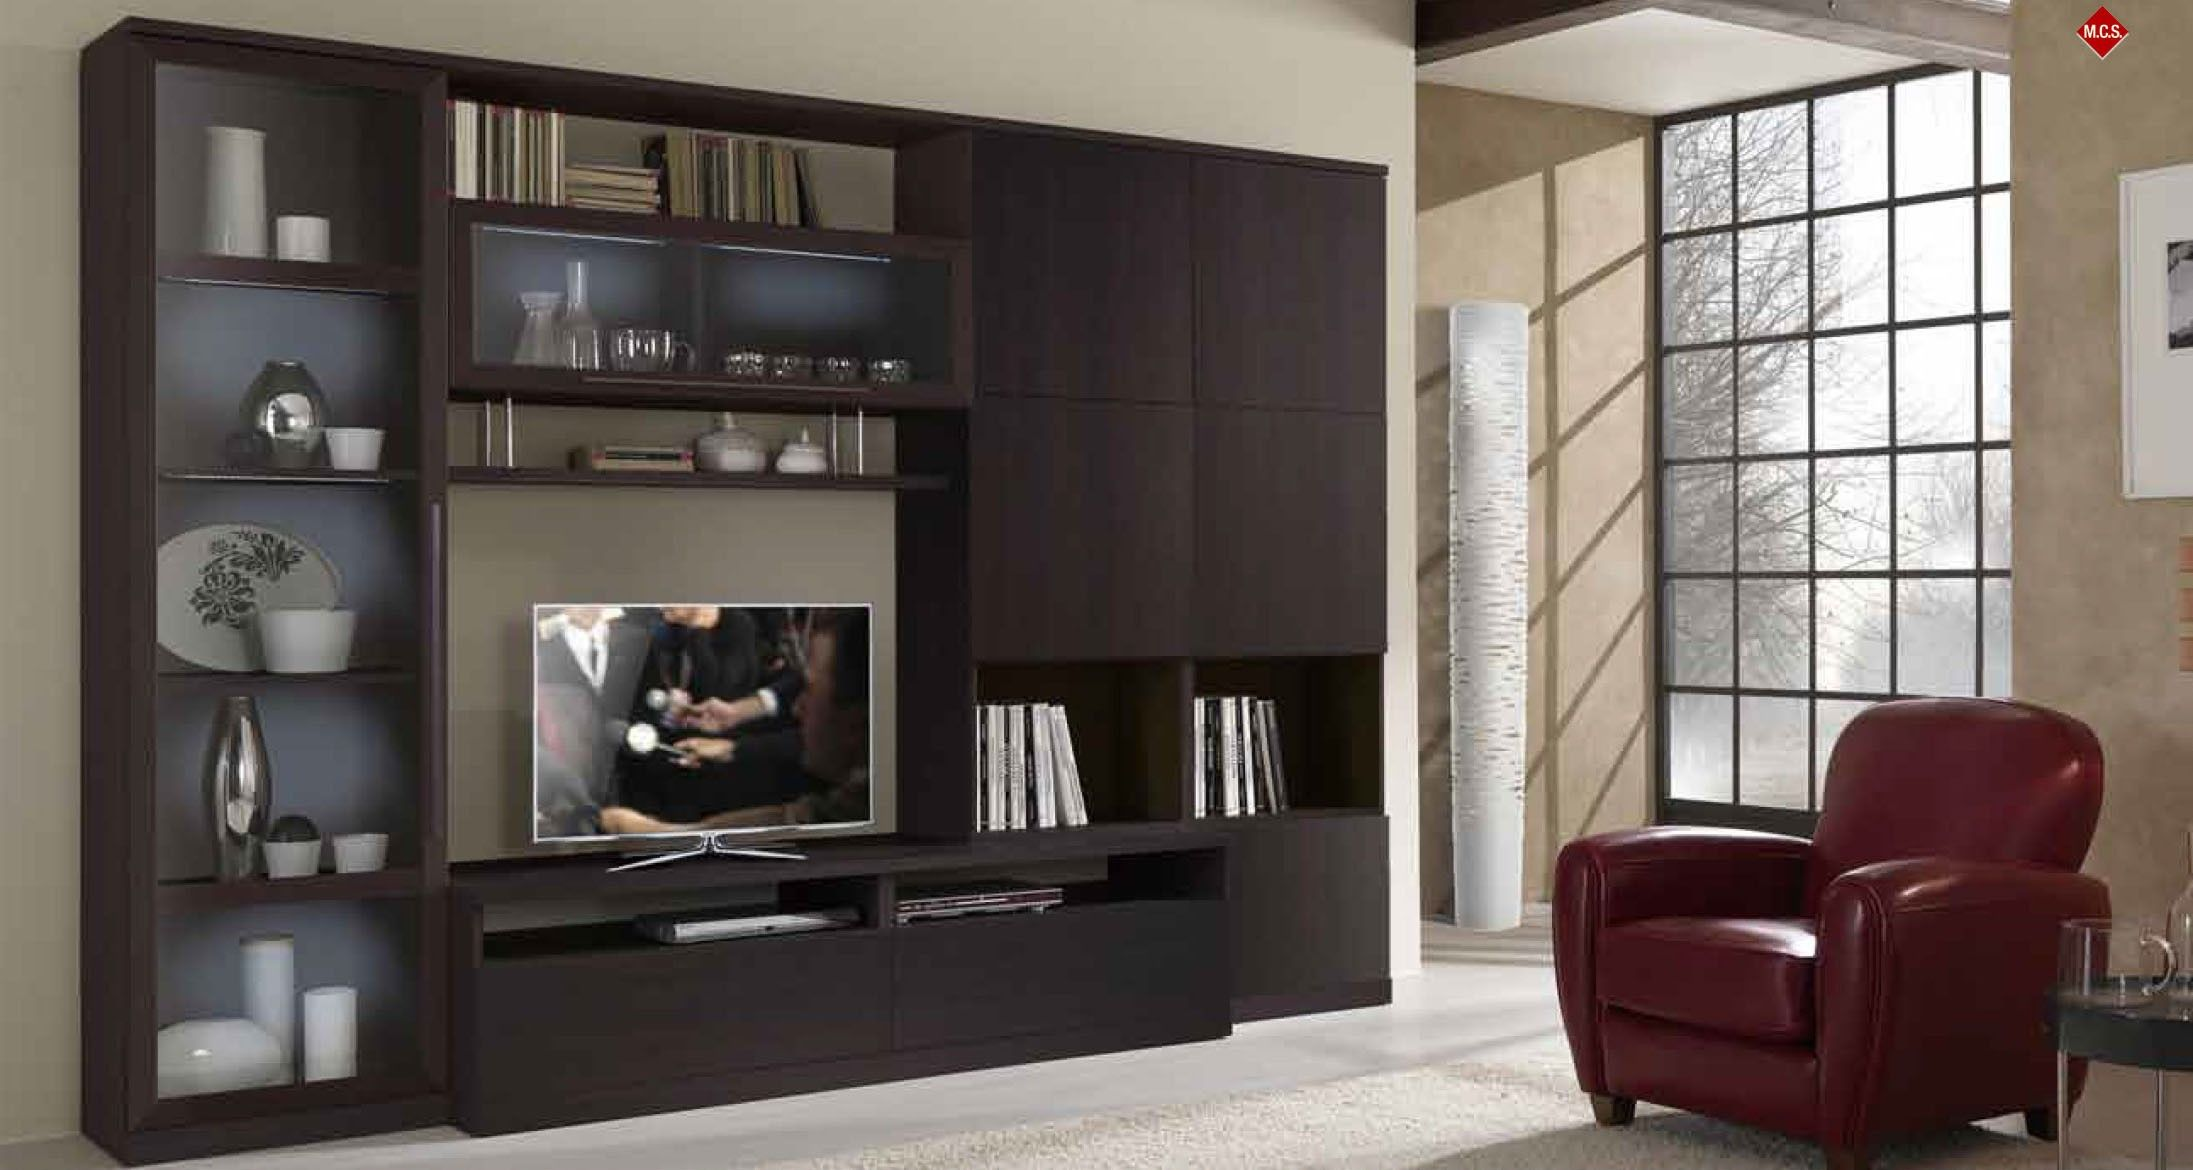 Living Room Cupboard Designs Decor Home Built In Bar And Wall Unit Ideas  Magnificent Living Room .